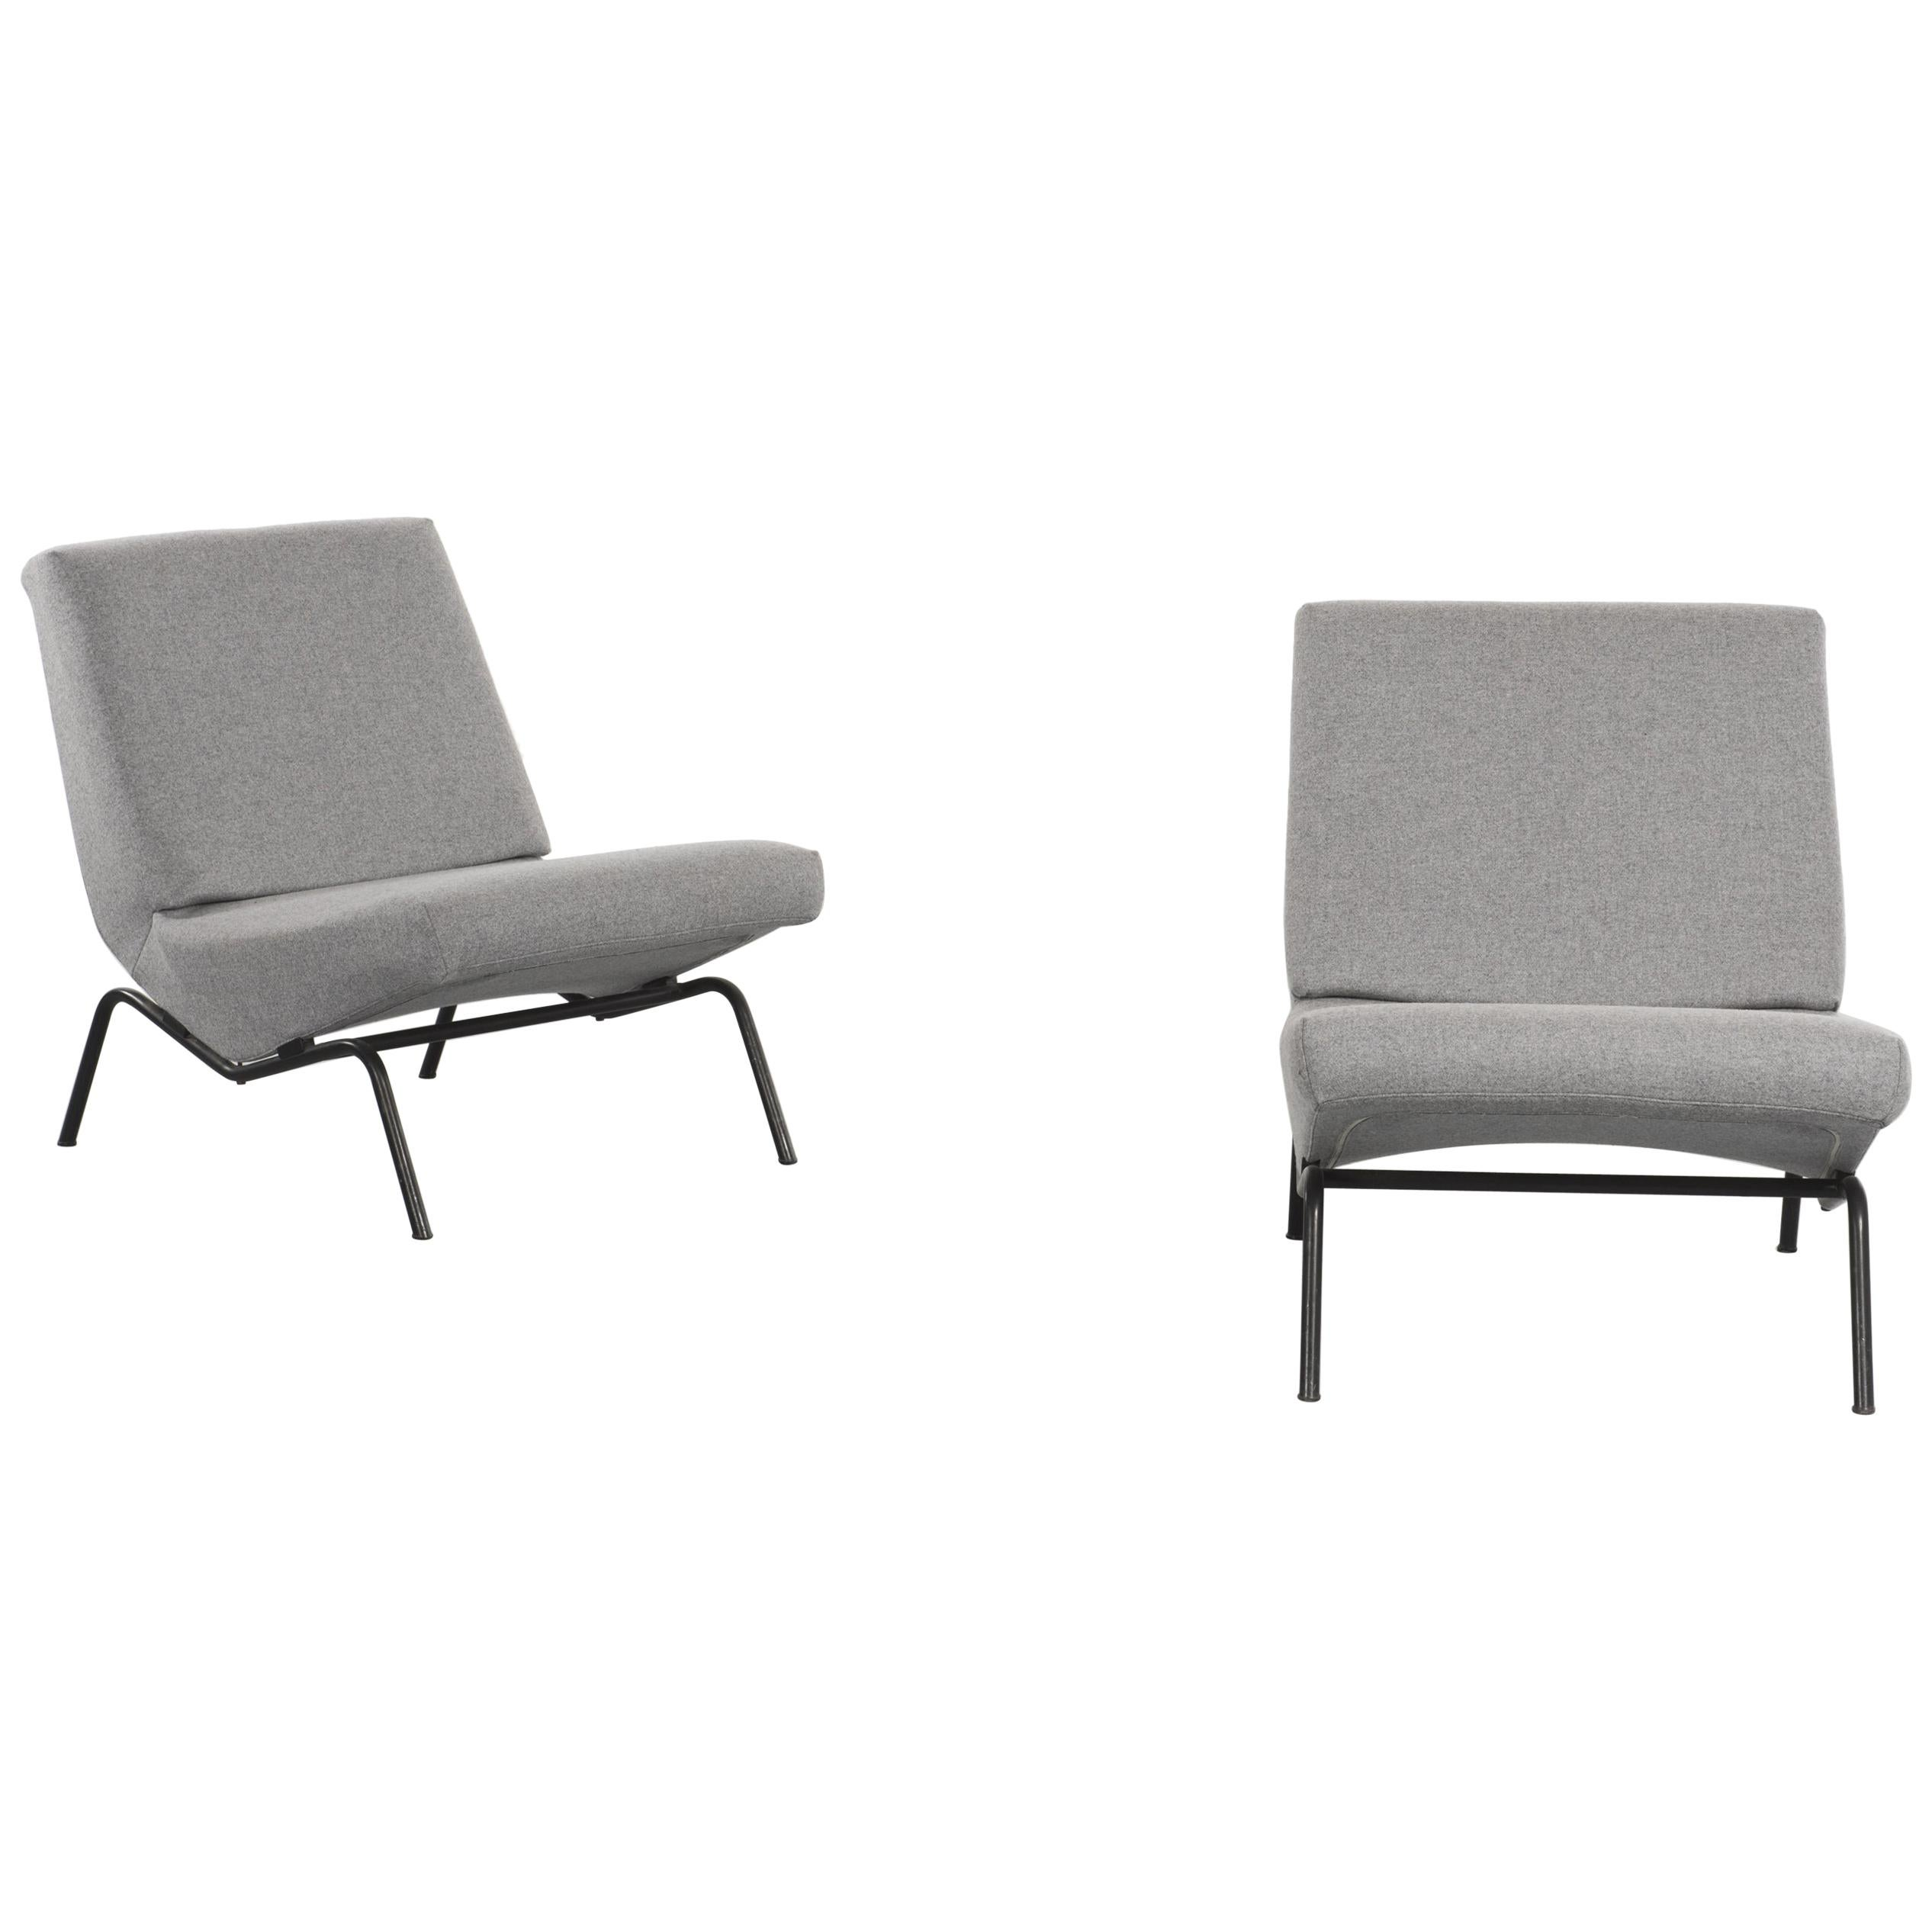 Pair Of Reupholstered Armless Chairs Cm194 Pierre Paulin For